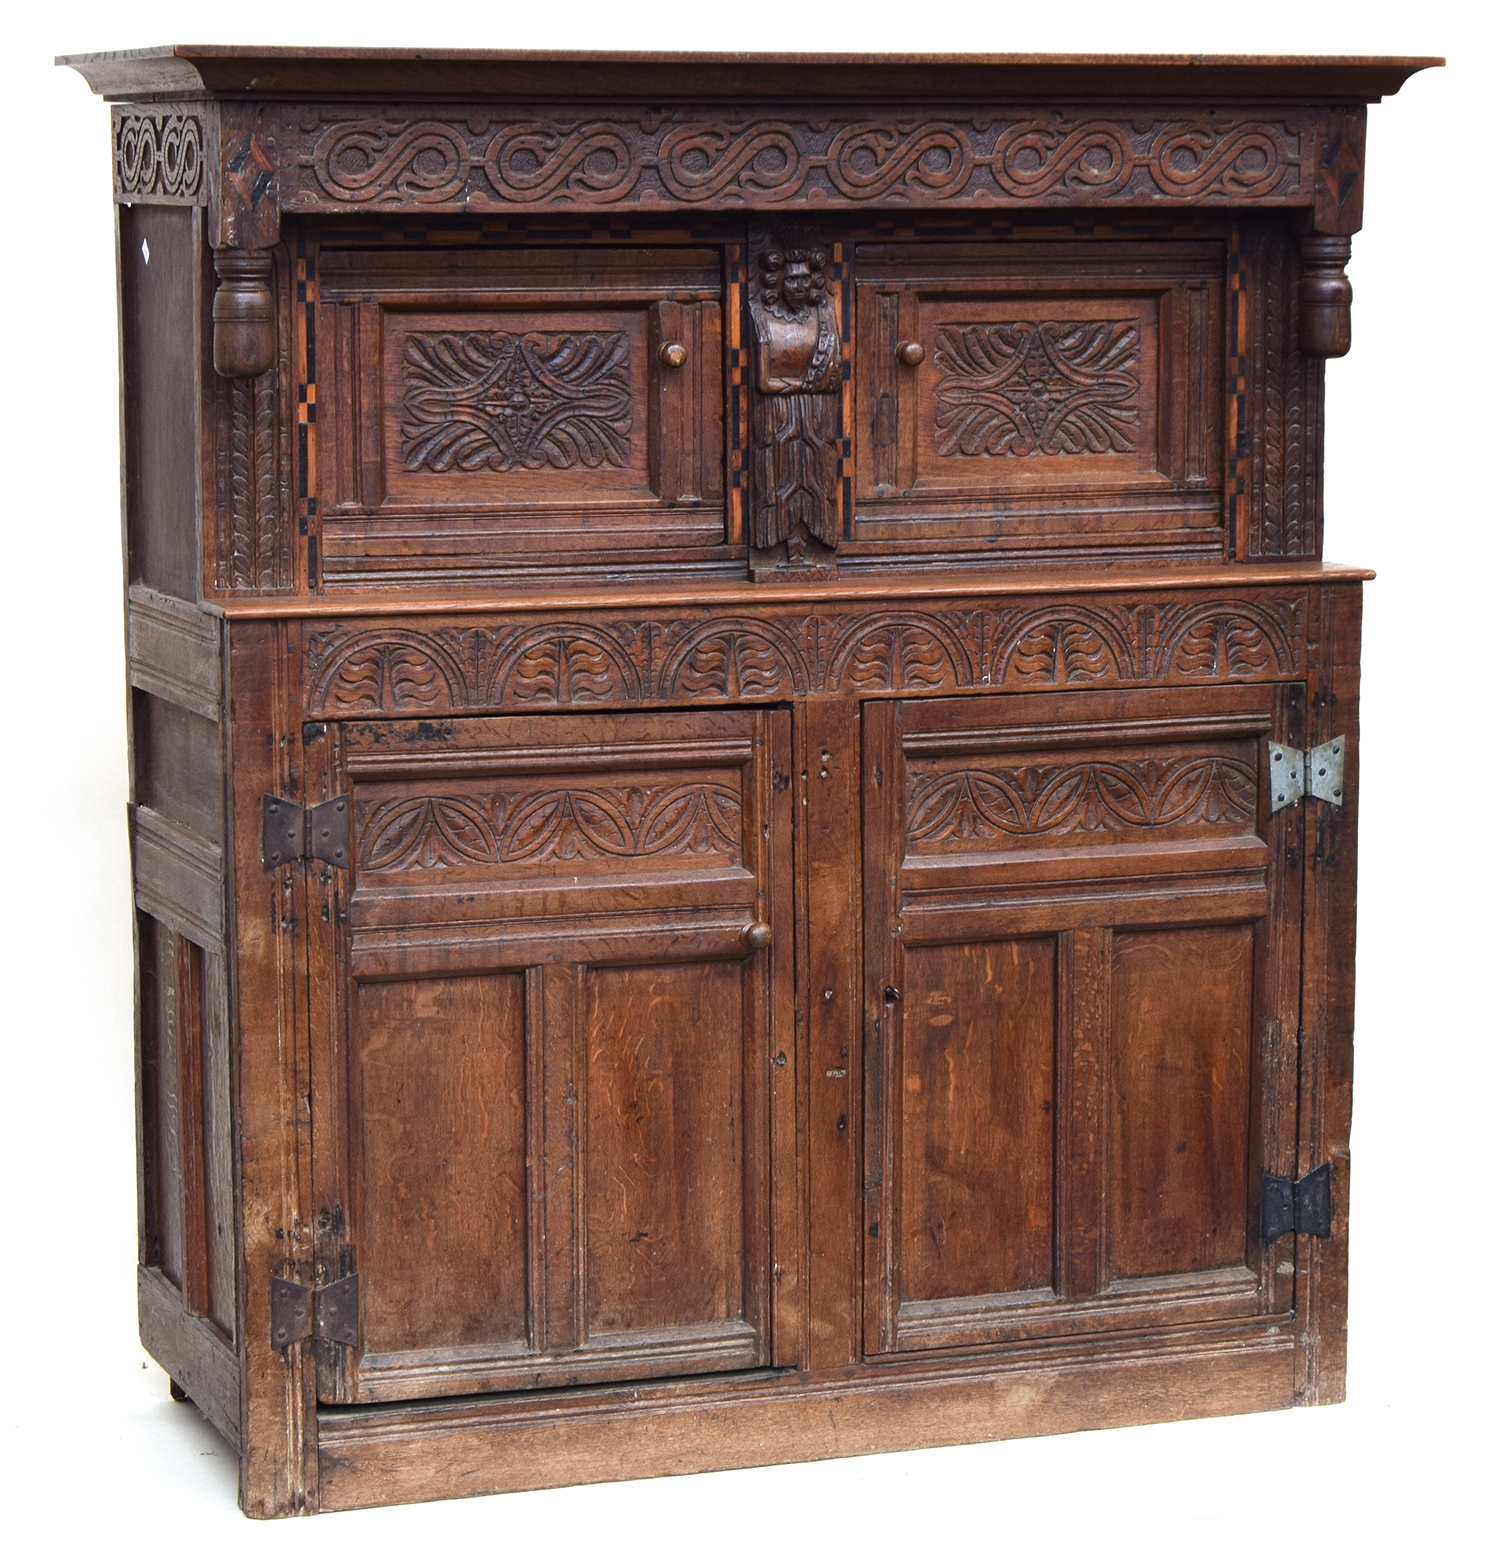 A 17th century joined oak court cupboard, boarded top, the upper section with turned pendants and - Image 2 of 3